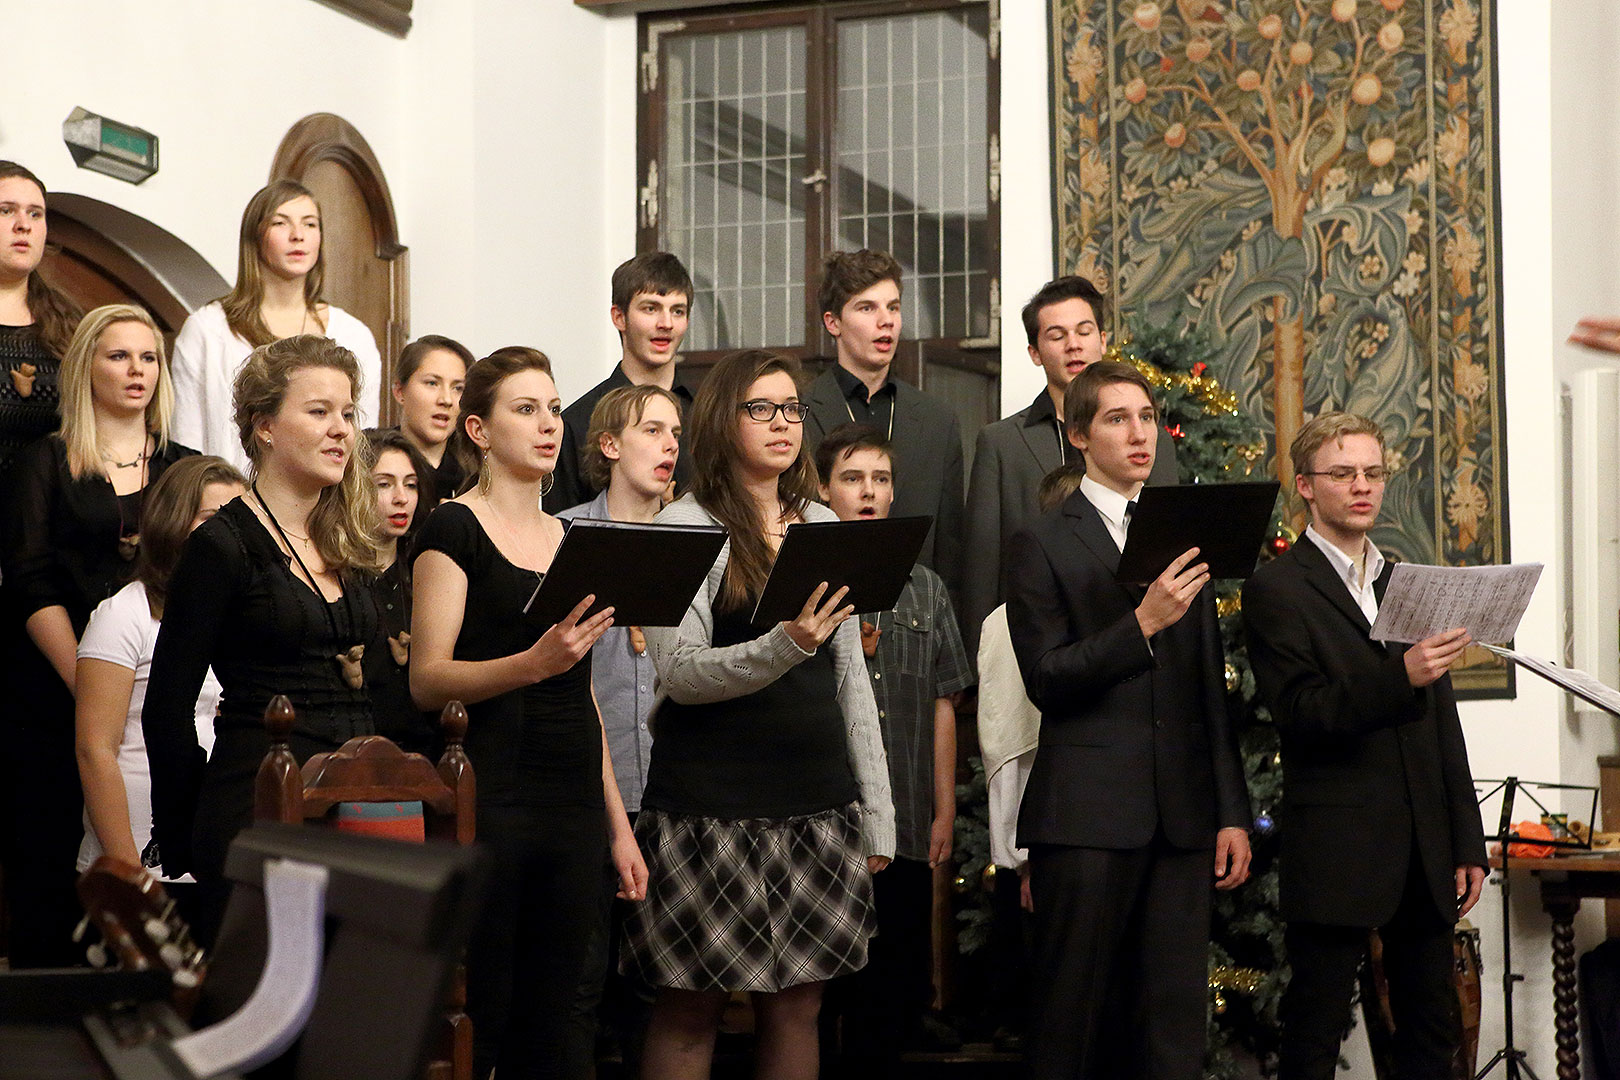 Time of Joy and Happiness - Concert by Medvíďata, Artistic Elementary School Český Krumlov, 22.12.2013